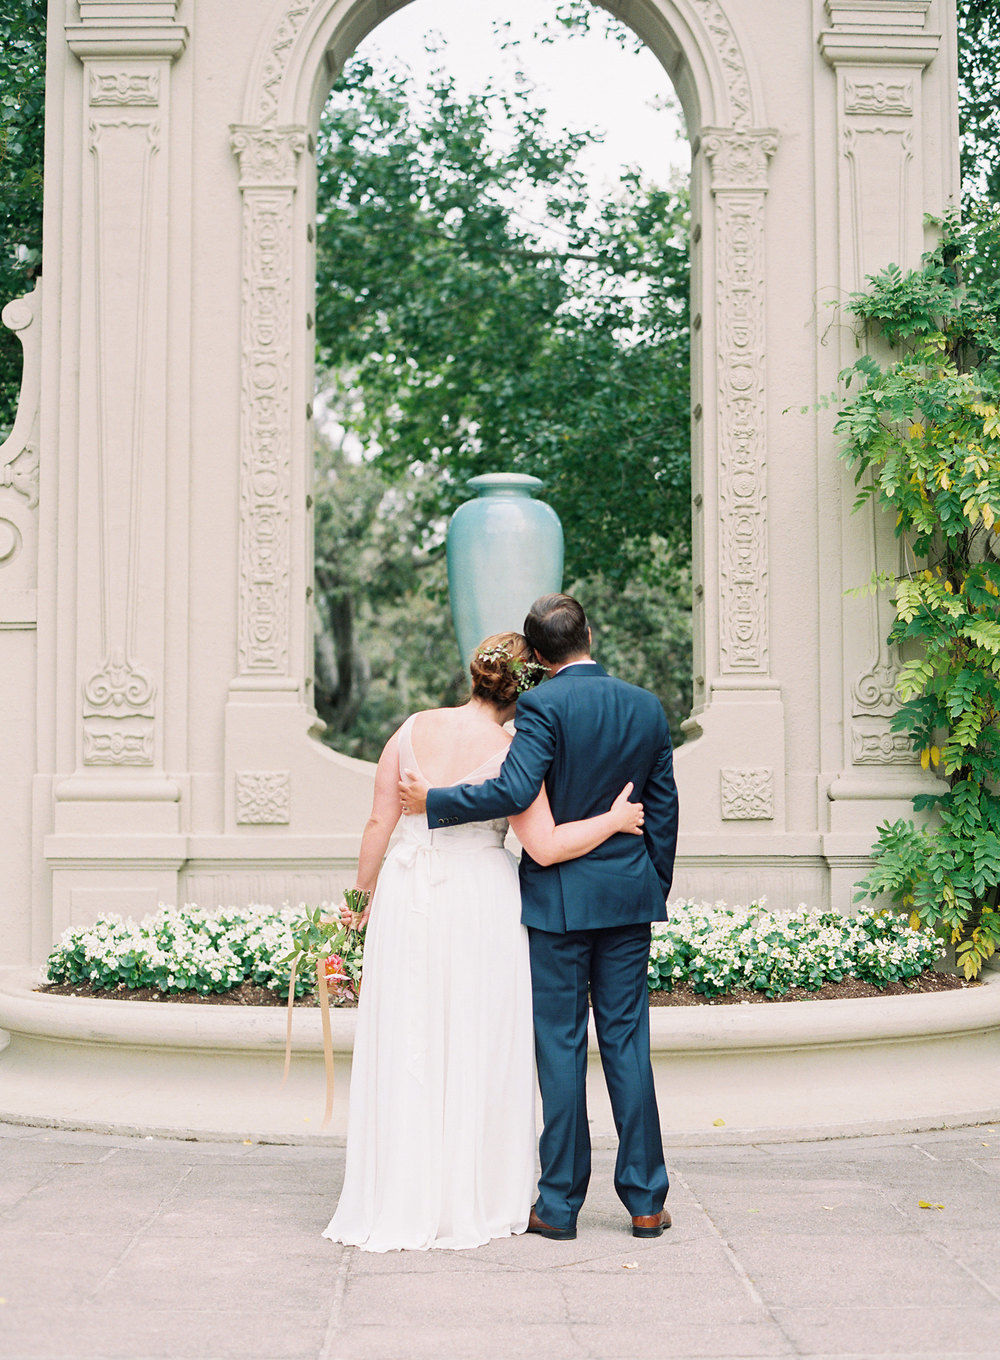 boho-inspired-wedding-at-piedmont-community-center-97.jpg